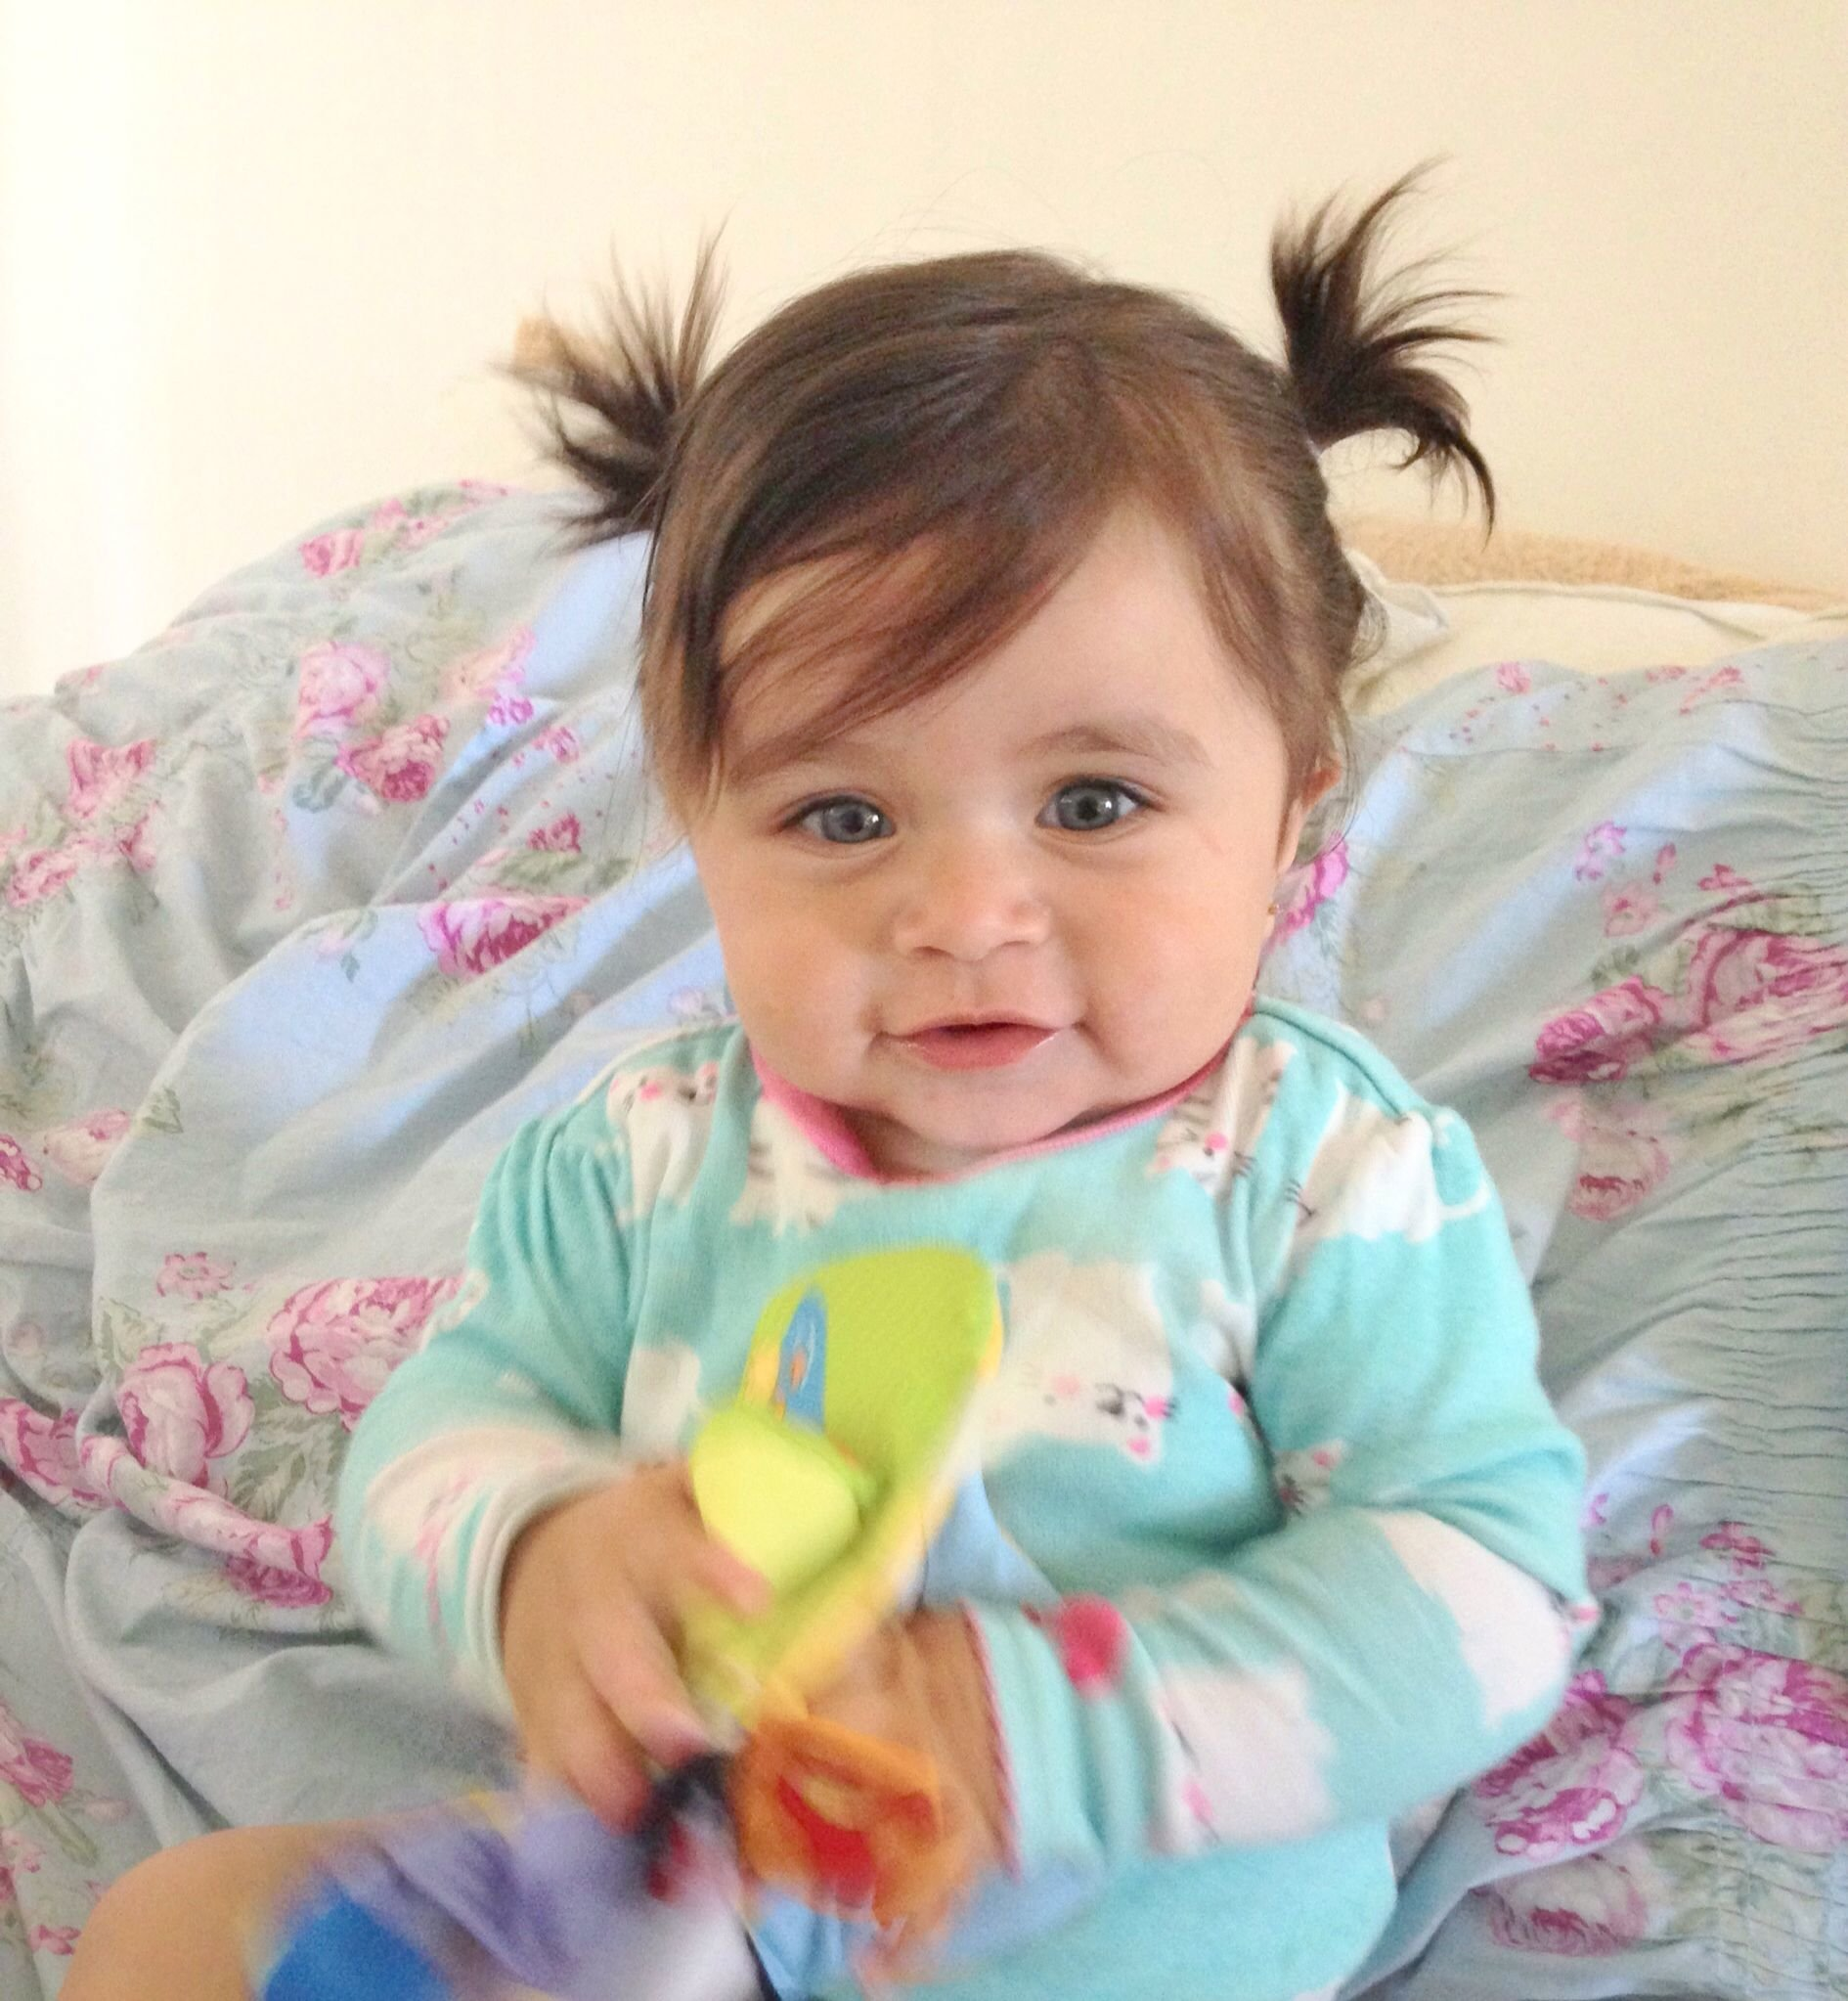 Free Baby Girl Hair Dos Ponytails Cute Baby Stuff D Baby Wallpaper